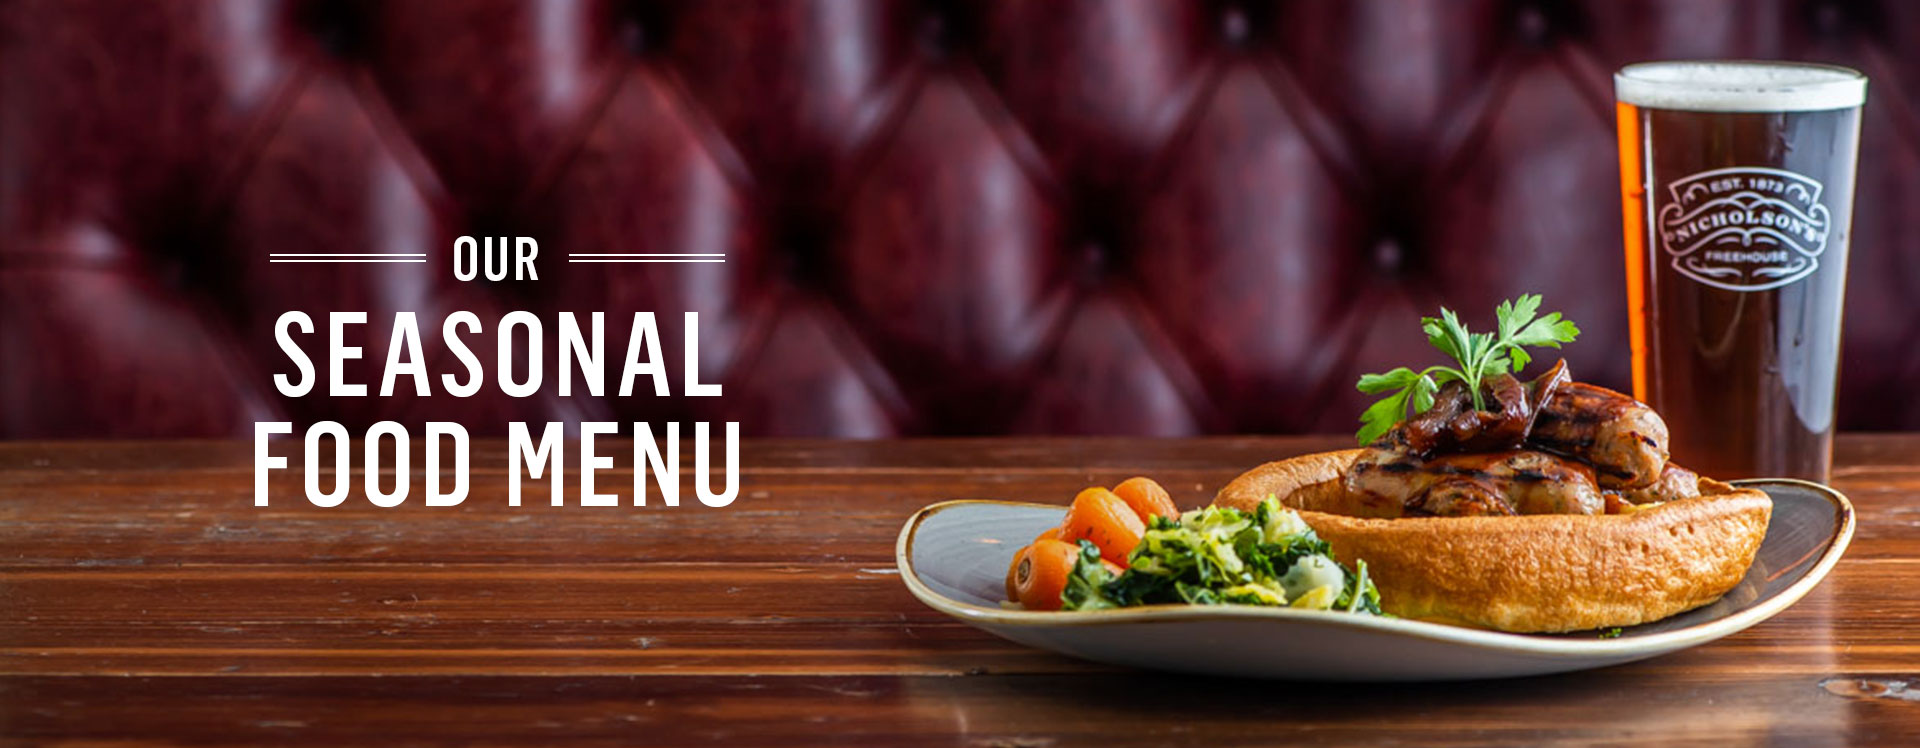 New Menu at The St George's Tavern